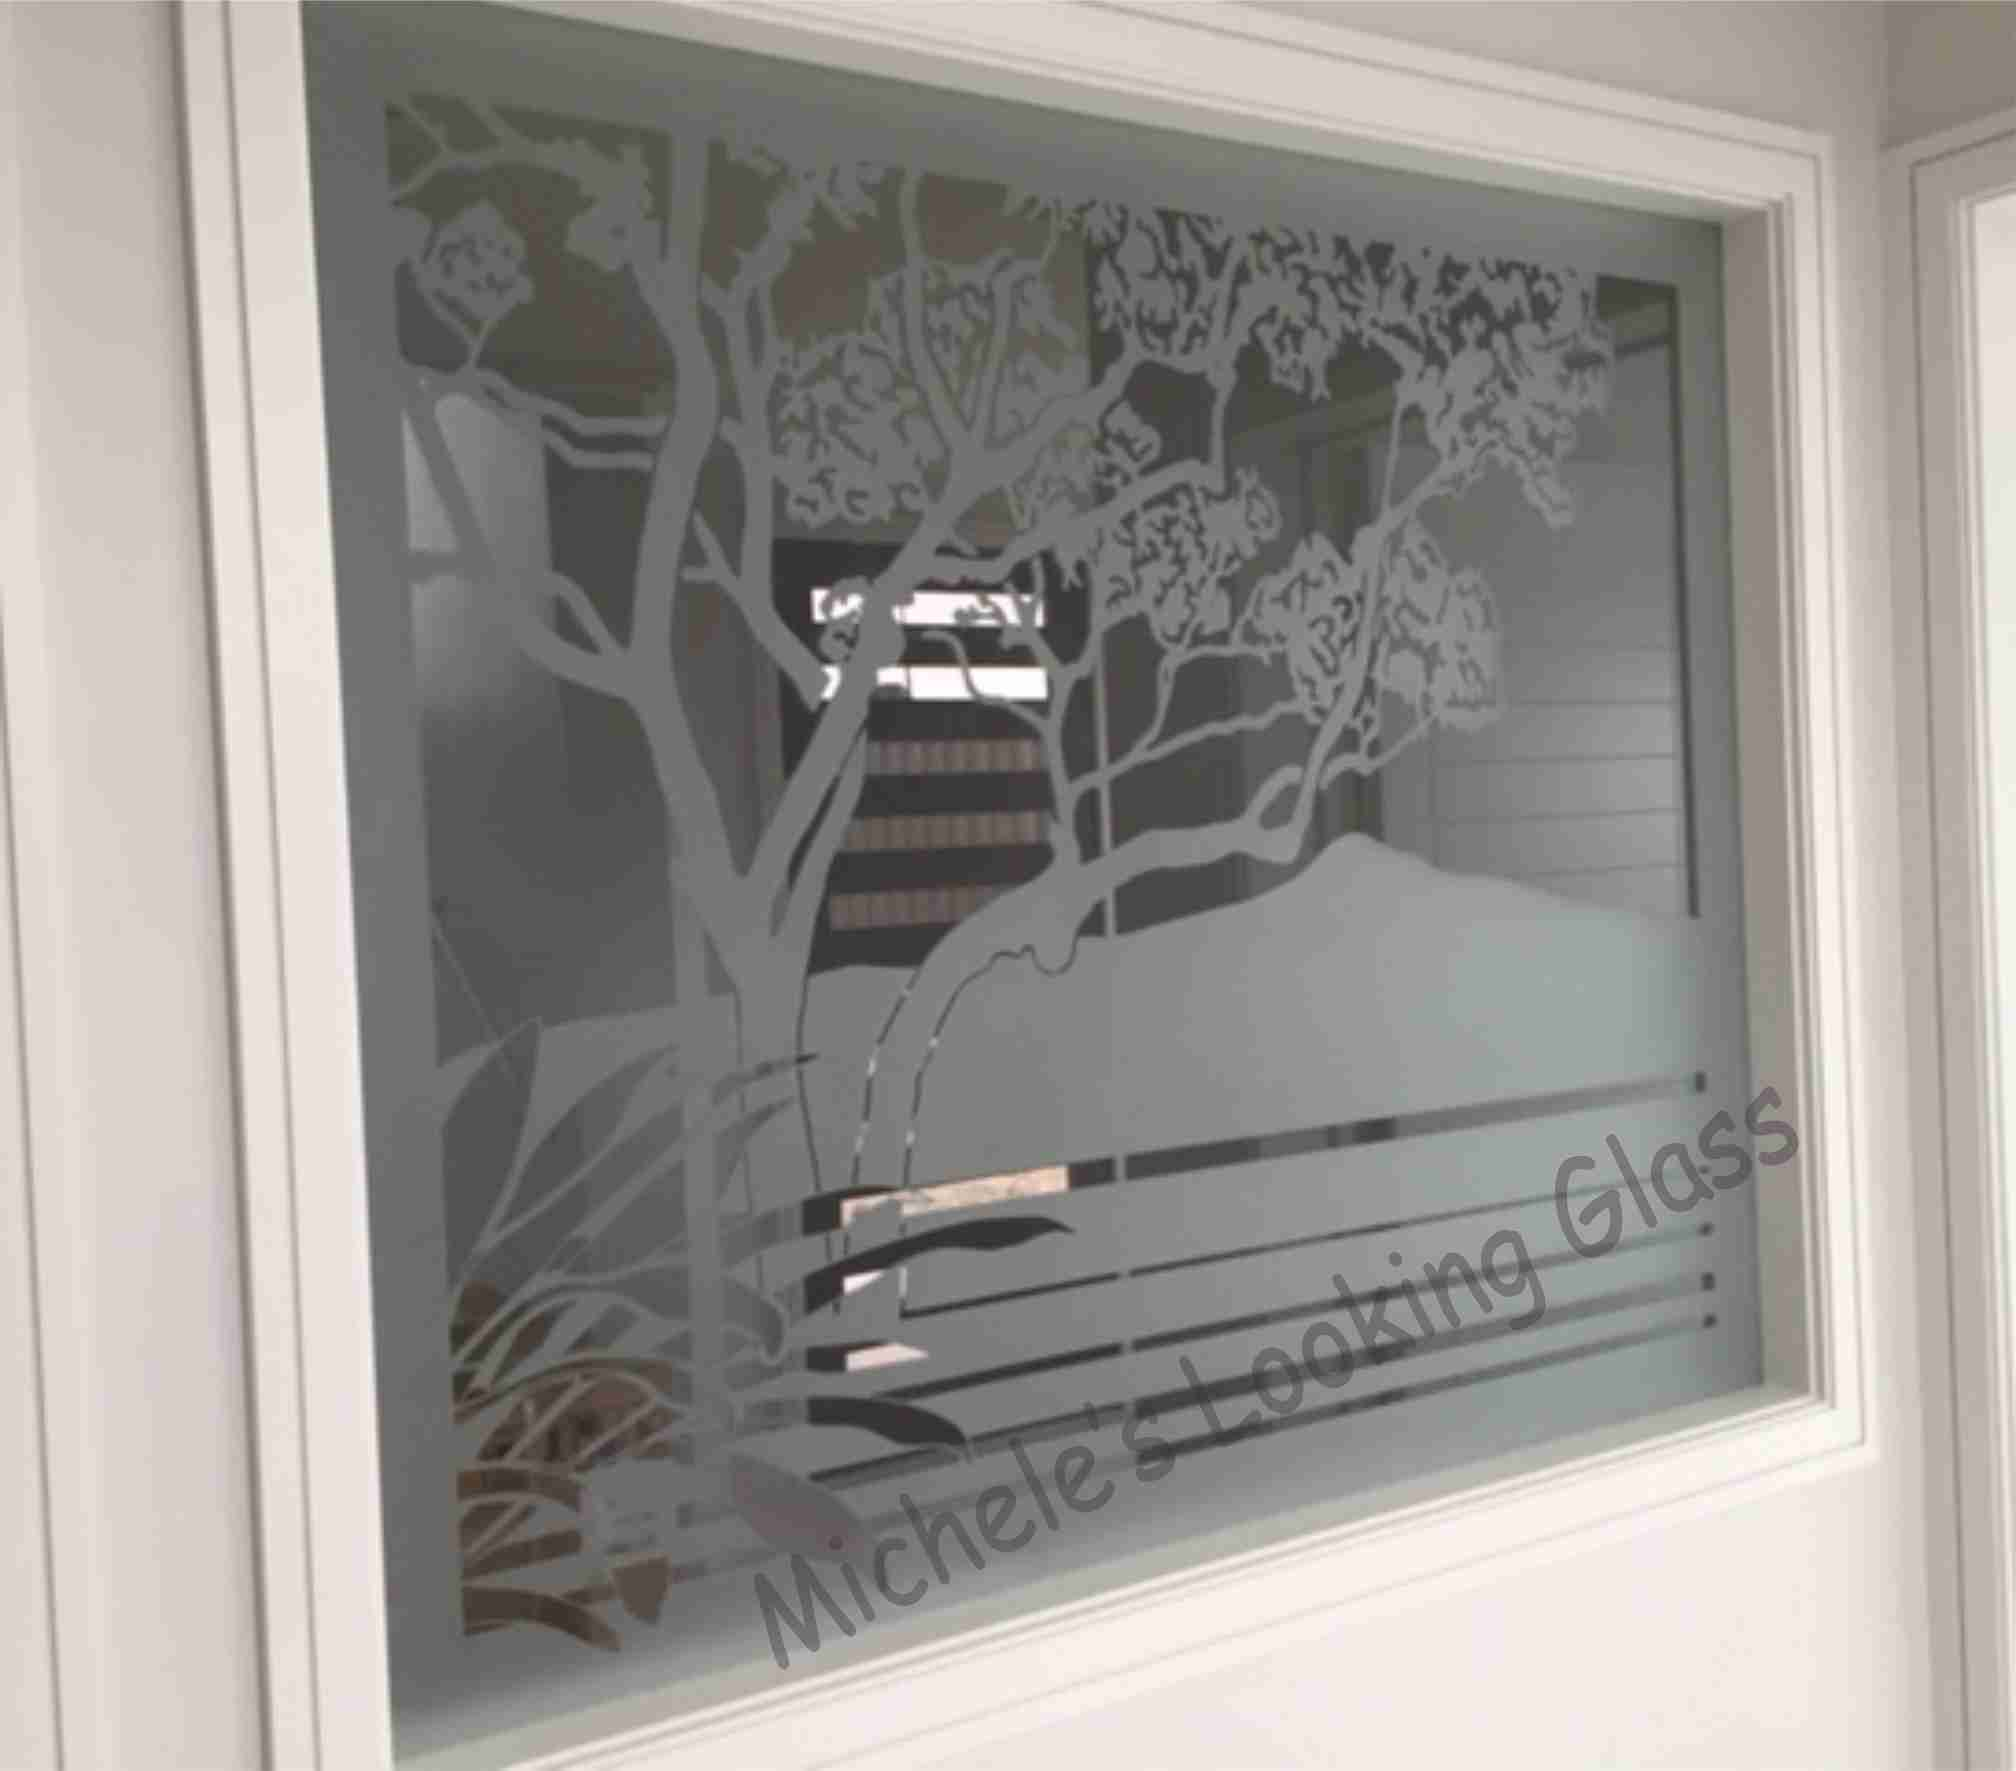 office doors with windows. Etched Inside Office Window Doors With Windows